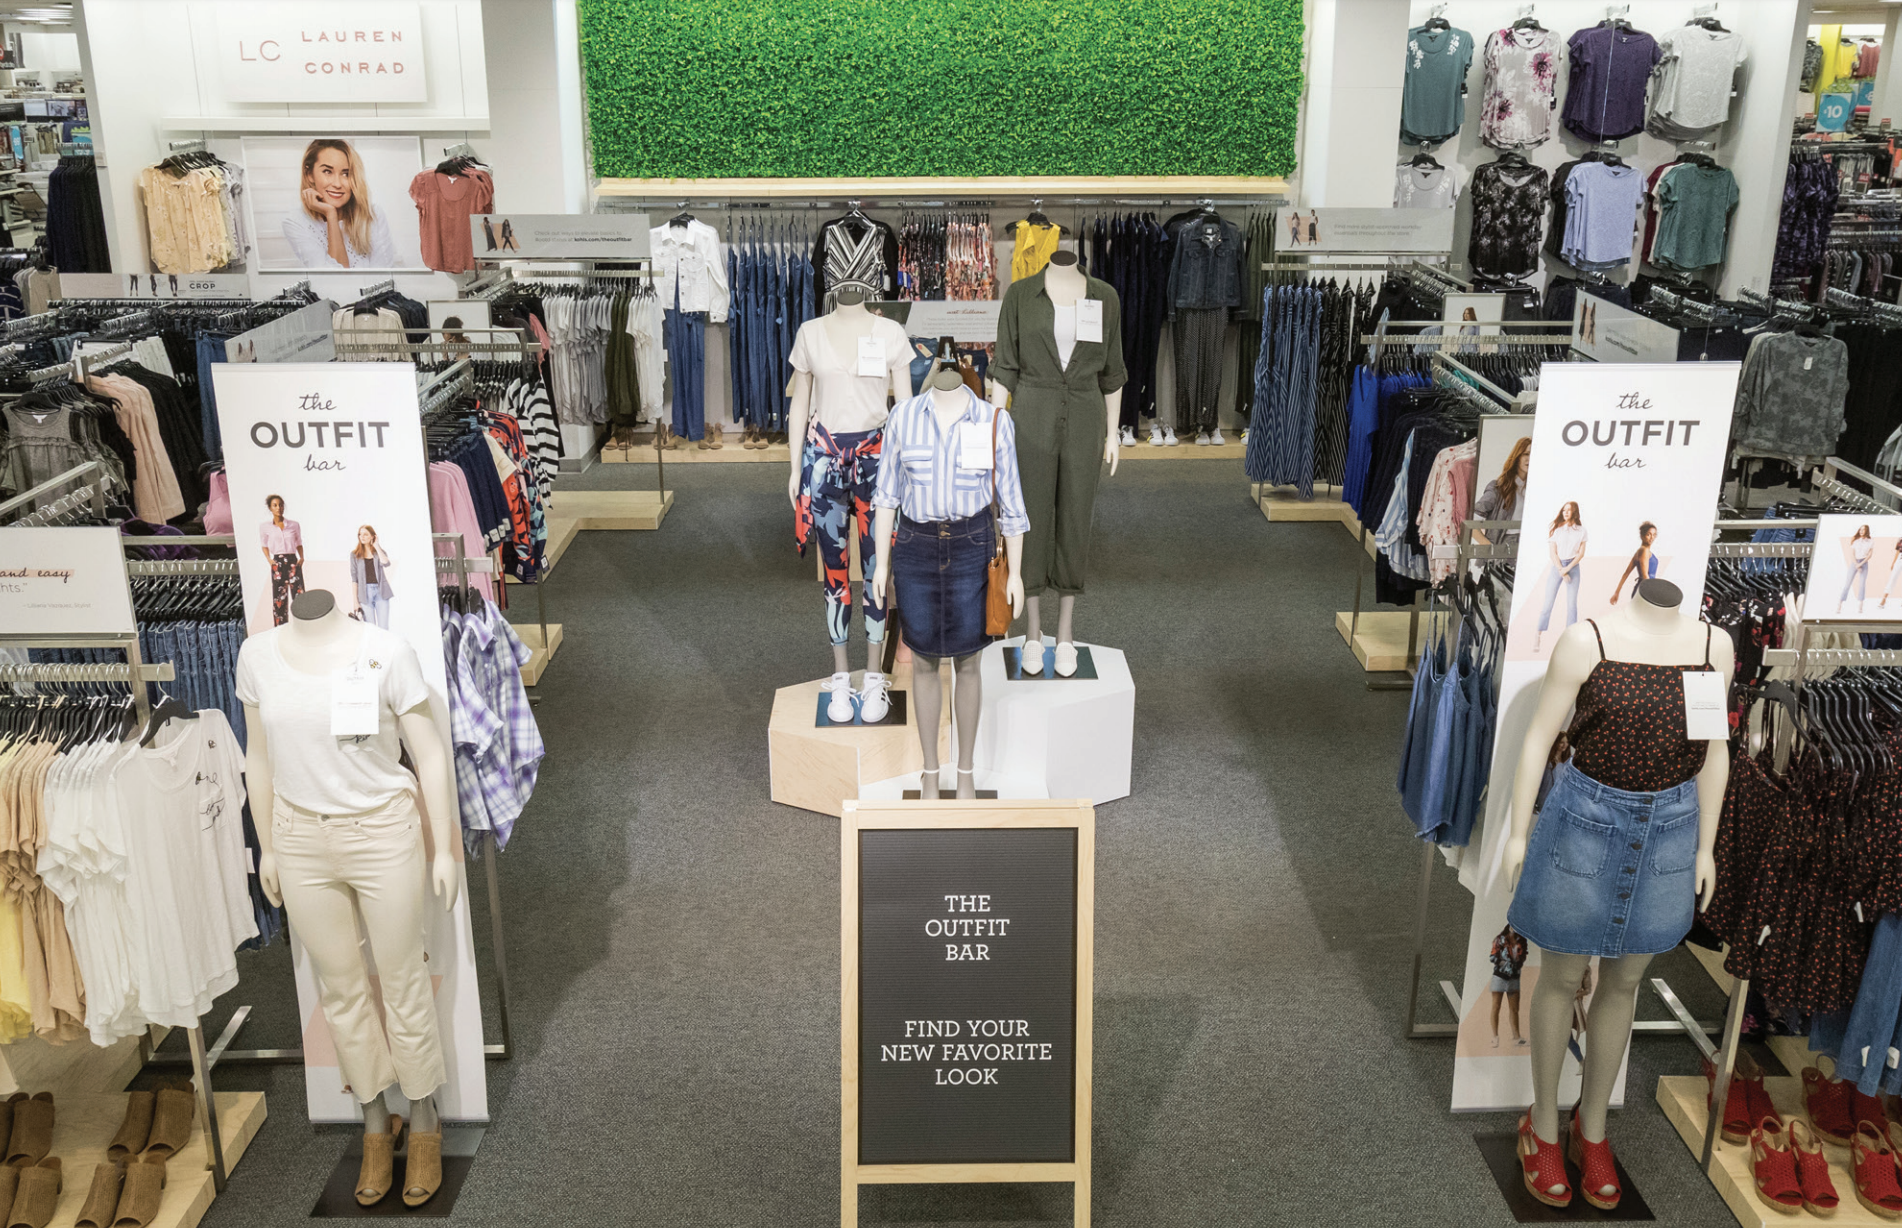 Kohl's raised its 2021 outlook after first-quarter sales jumped nearly 70 percent to $3.7 billion, and inventory levels dipped 25 percent.